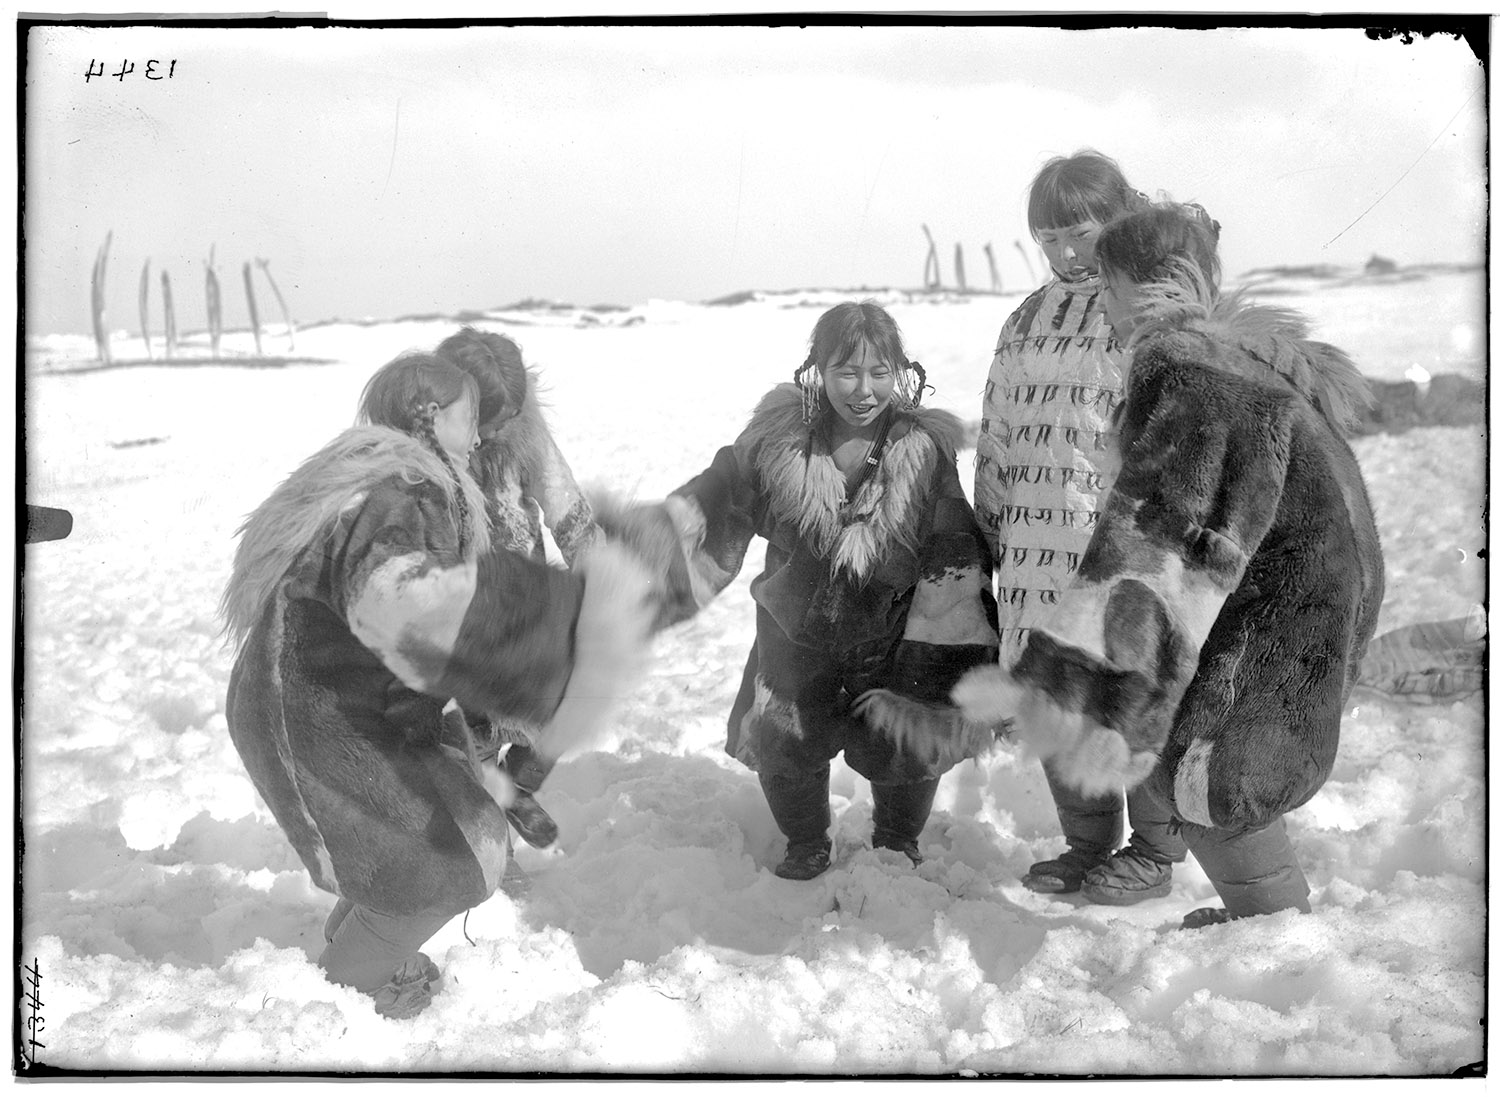 Five women wearing heavy garments hold hands in a circle and dance in the snow.